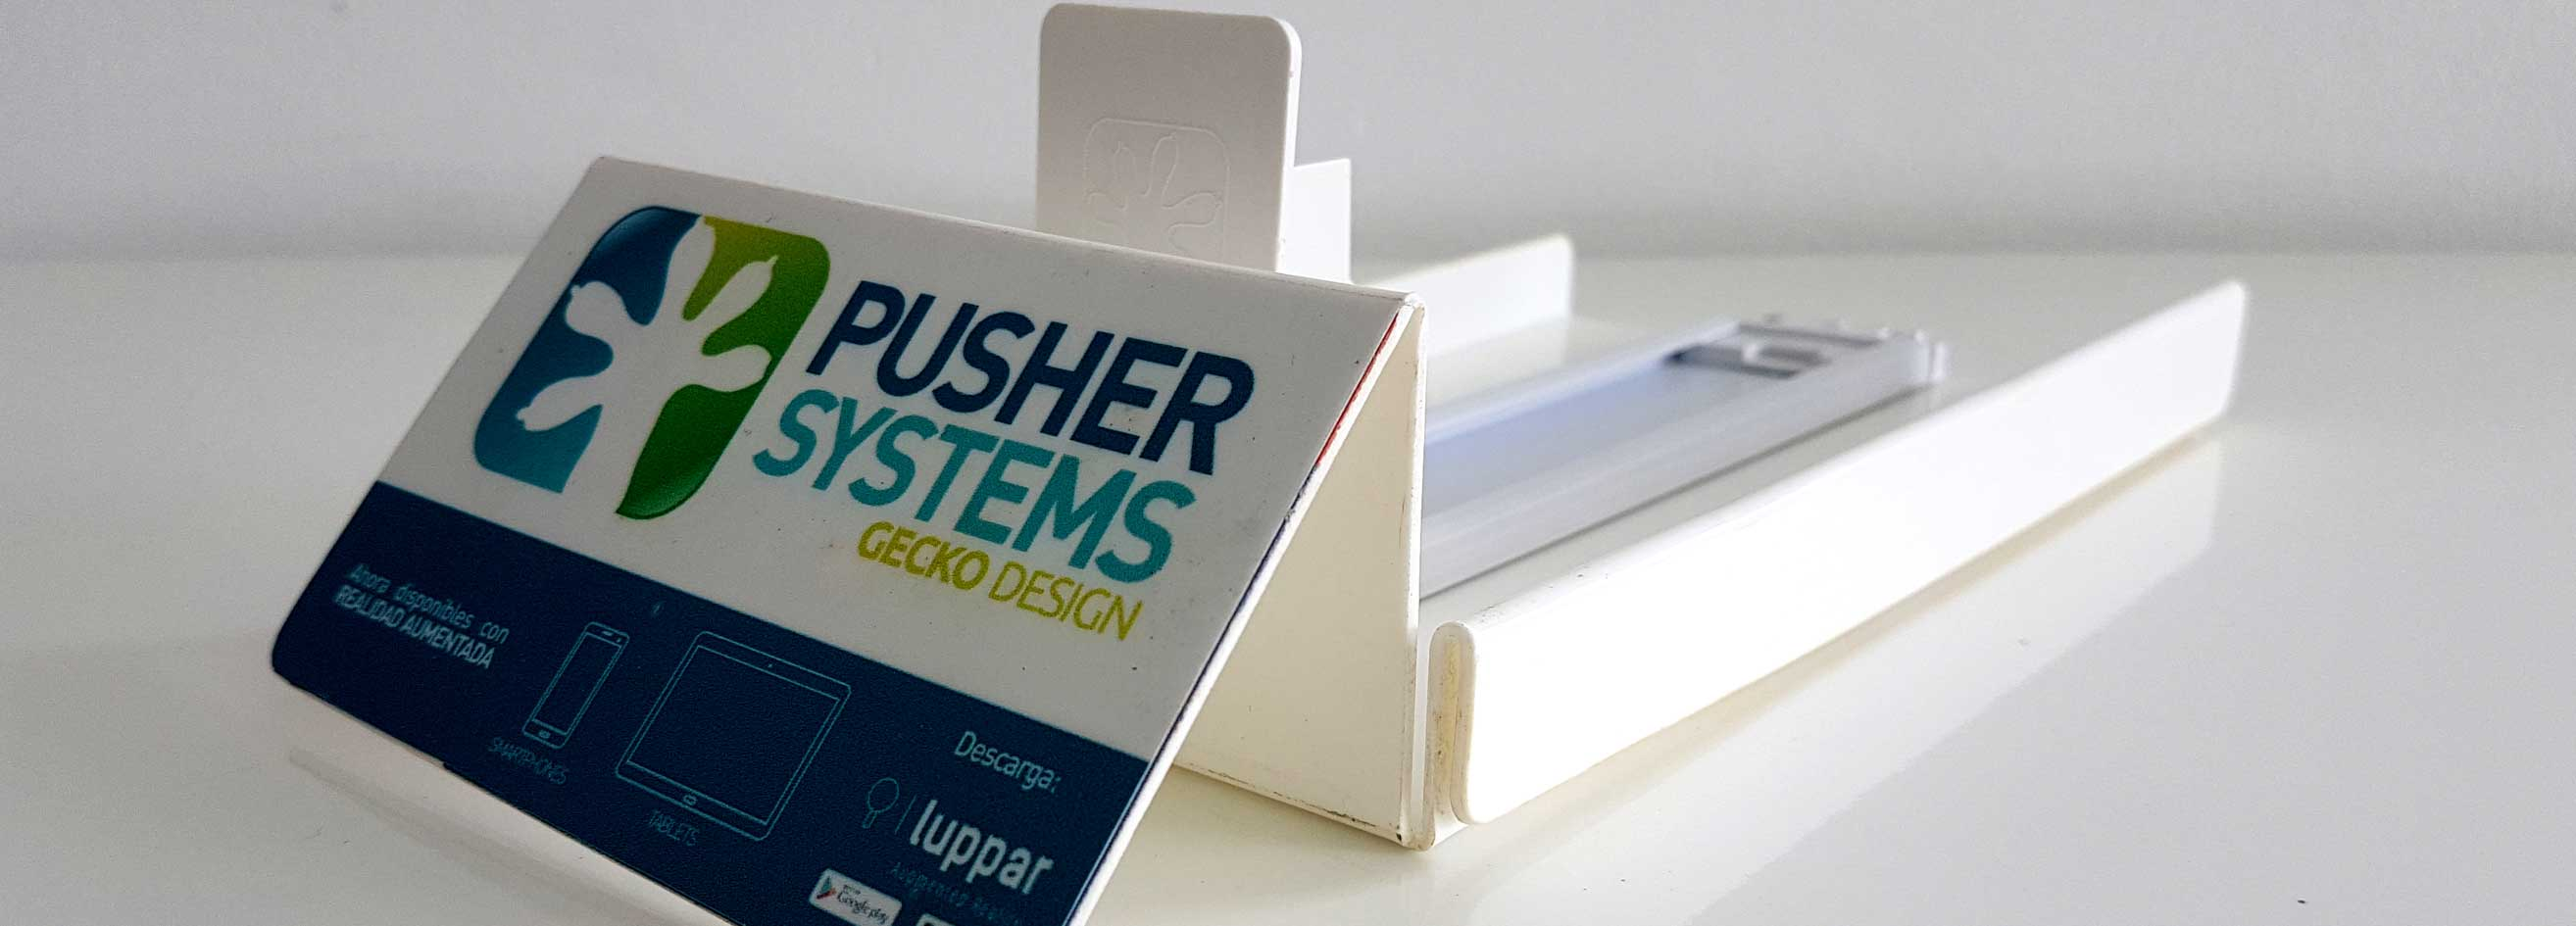 Pusher Systems